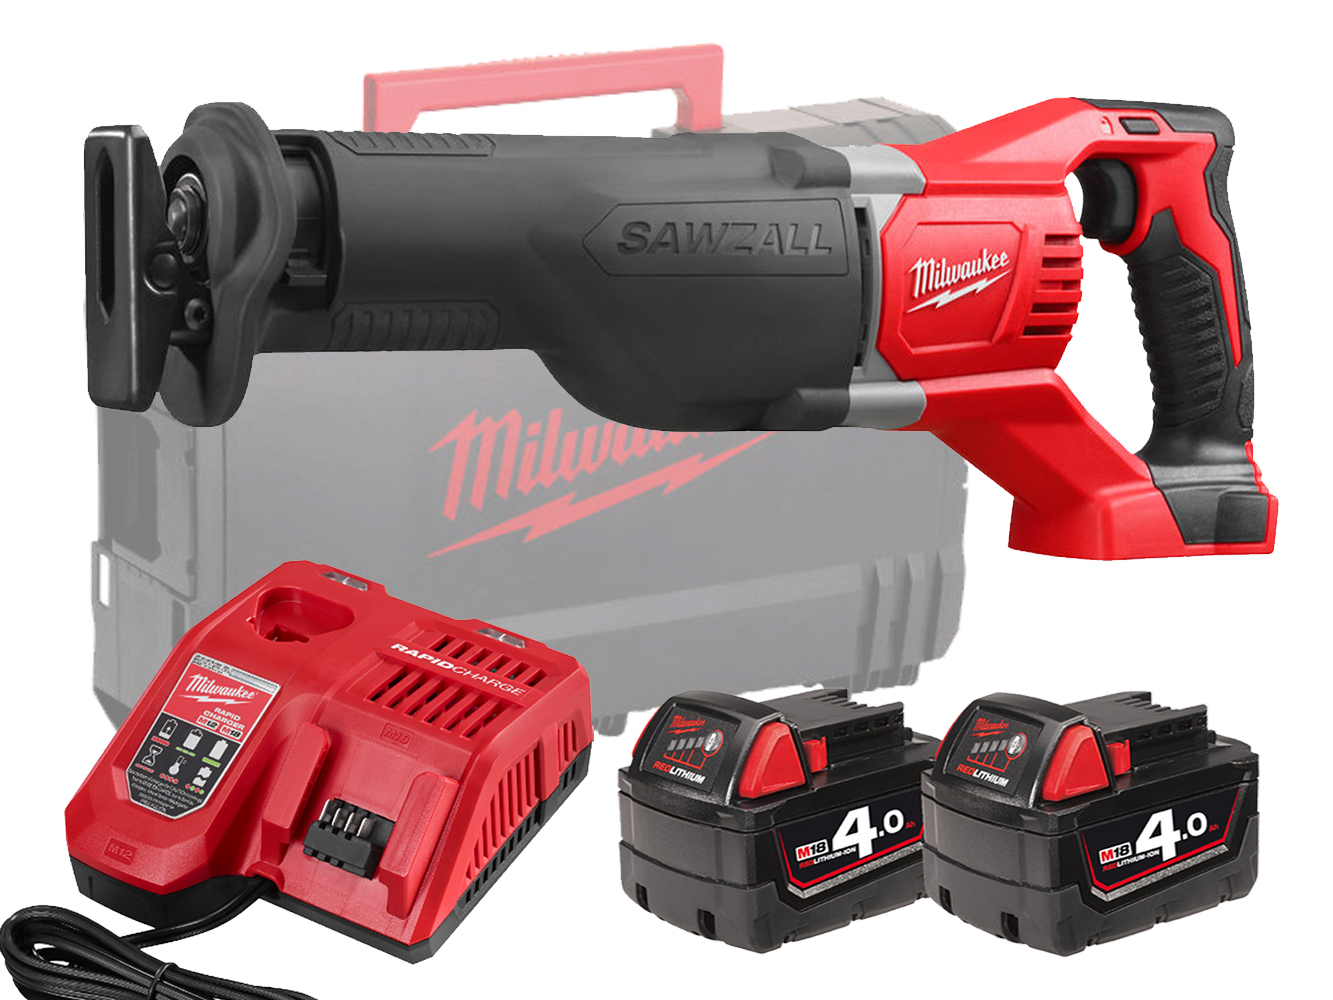 Milwaukee M18BSX 18V Brushed Sawzall (Reciprocating Saw) - 4.0Ah Pack